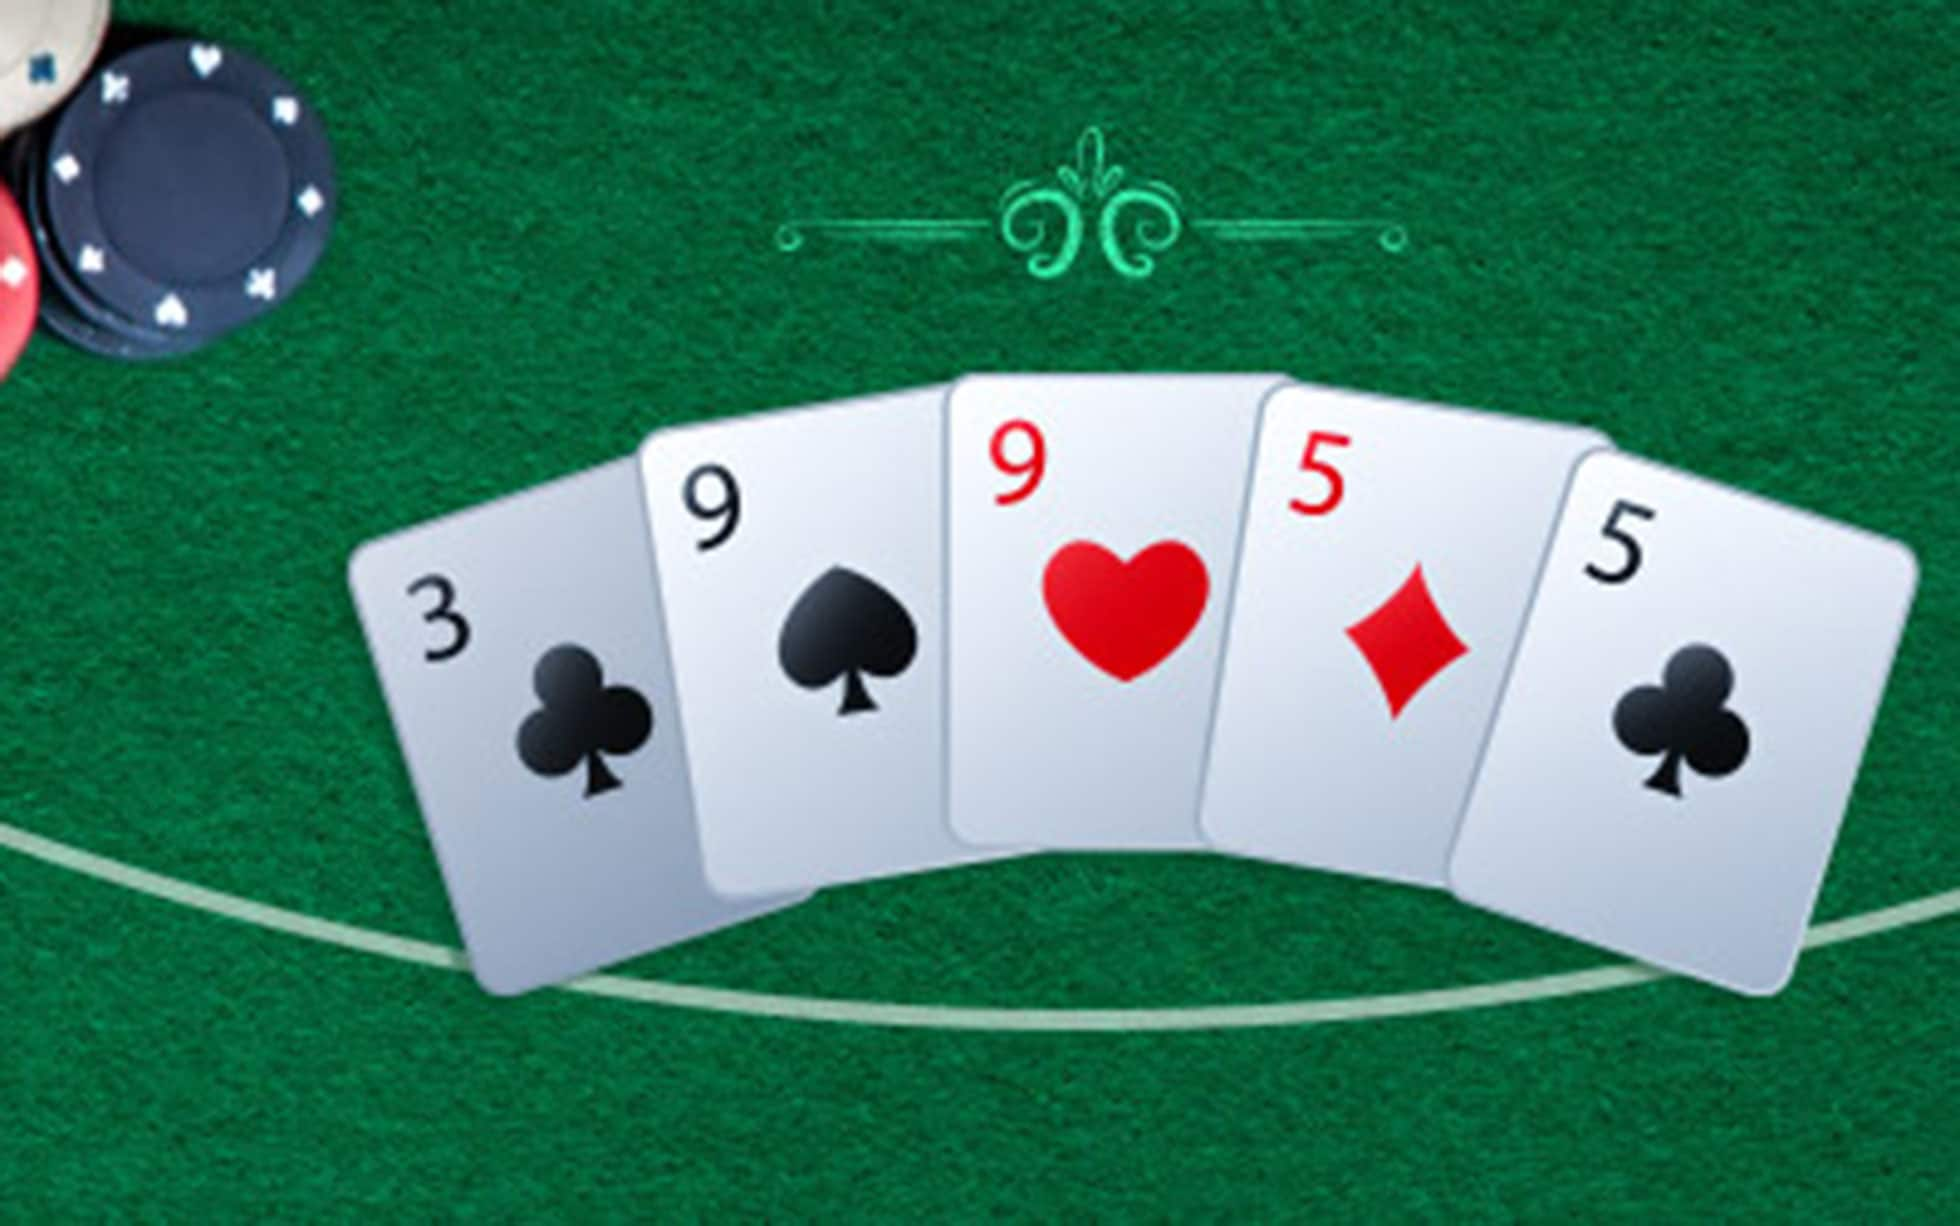 Bandar Q an excellent possibility to make incentives in poker online activity